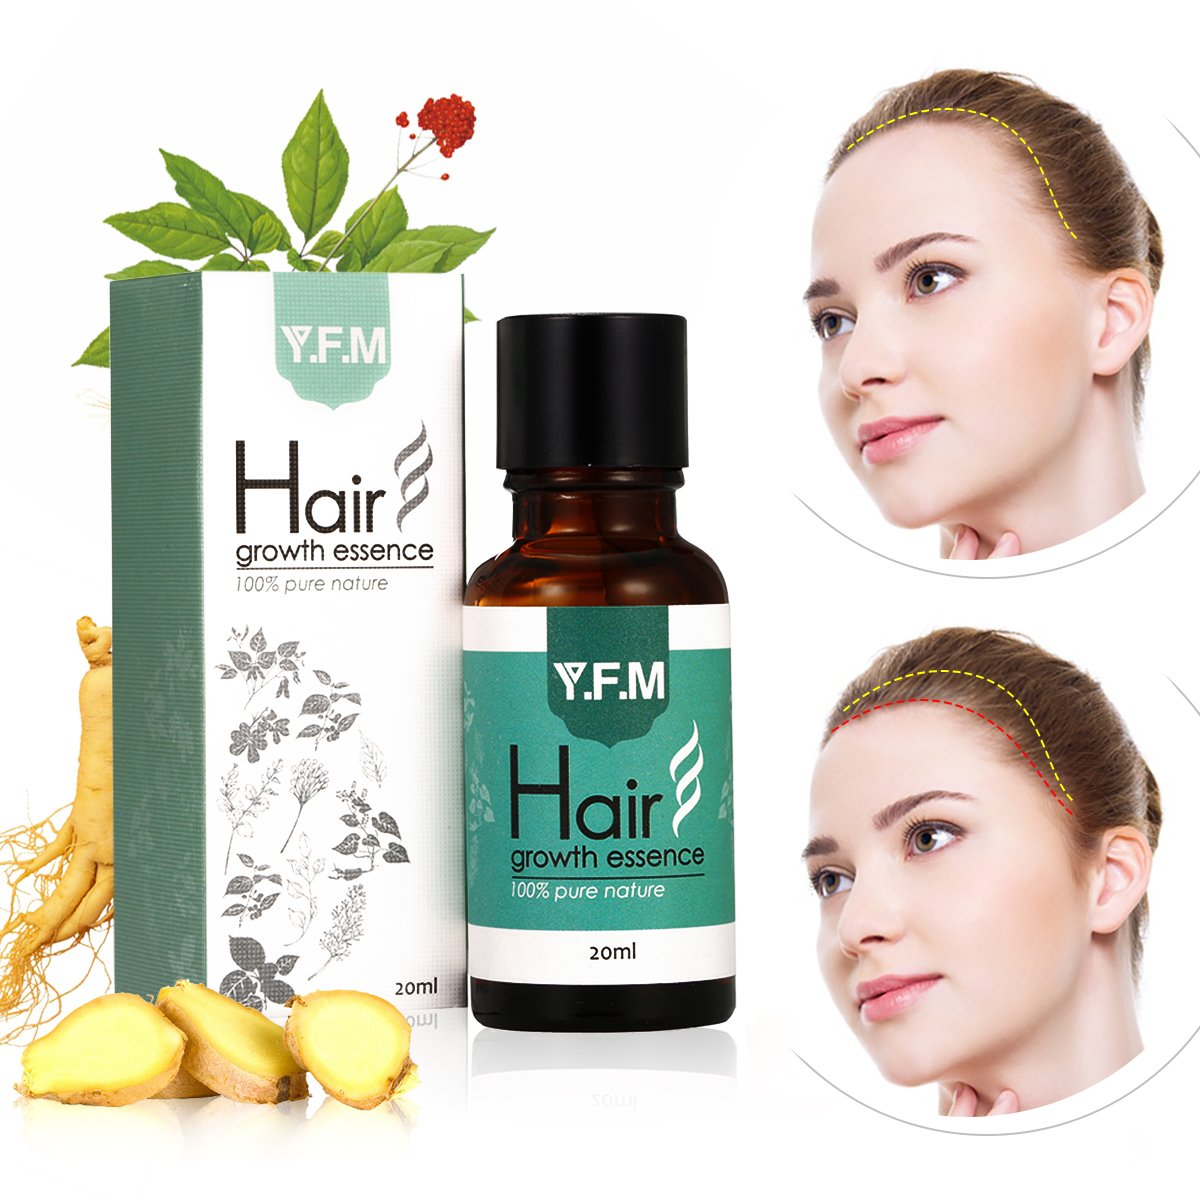 Y.F.M Hair Growth Essence oil, Mother's Day, Father's Day Gift, Hair Regrowth Treatment, Hair Loss Treatment for Men & Women Mother's Day Father's Day Gift Luckyfine